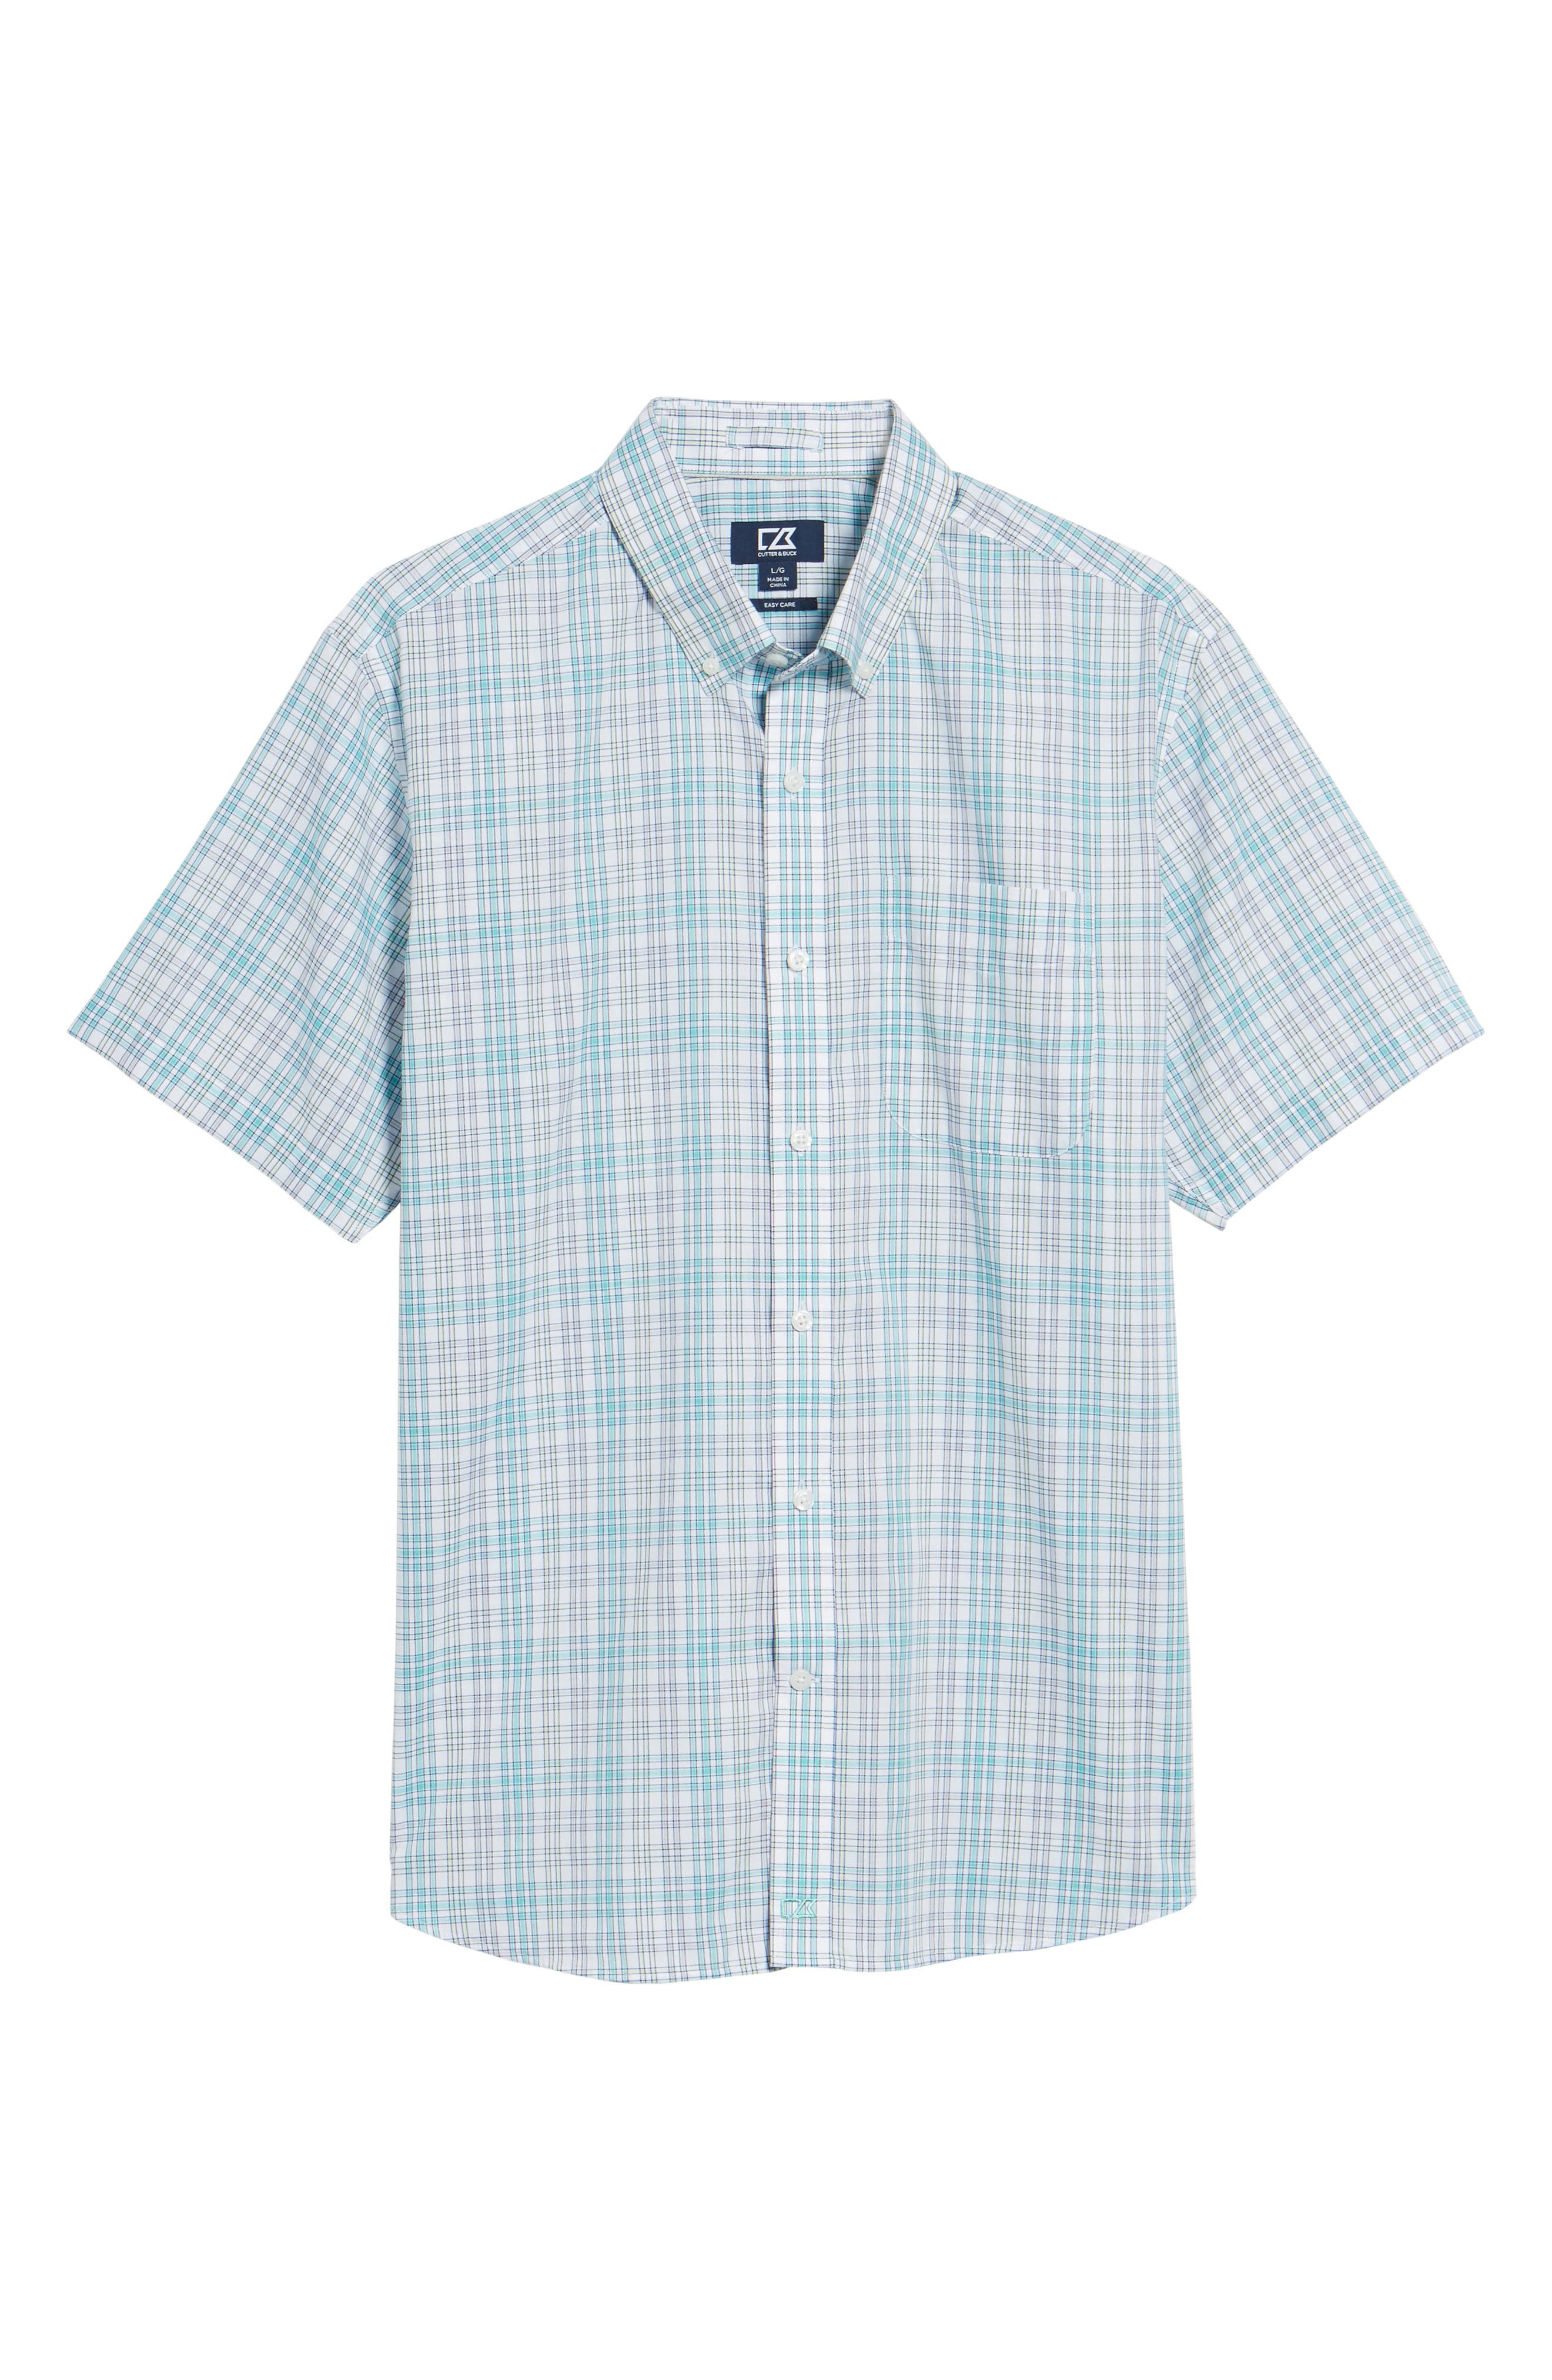 Isaac Plaid Easy Care Woven Shirt,                             Alternate thumbnail 6, color,                             328